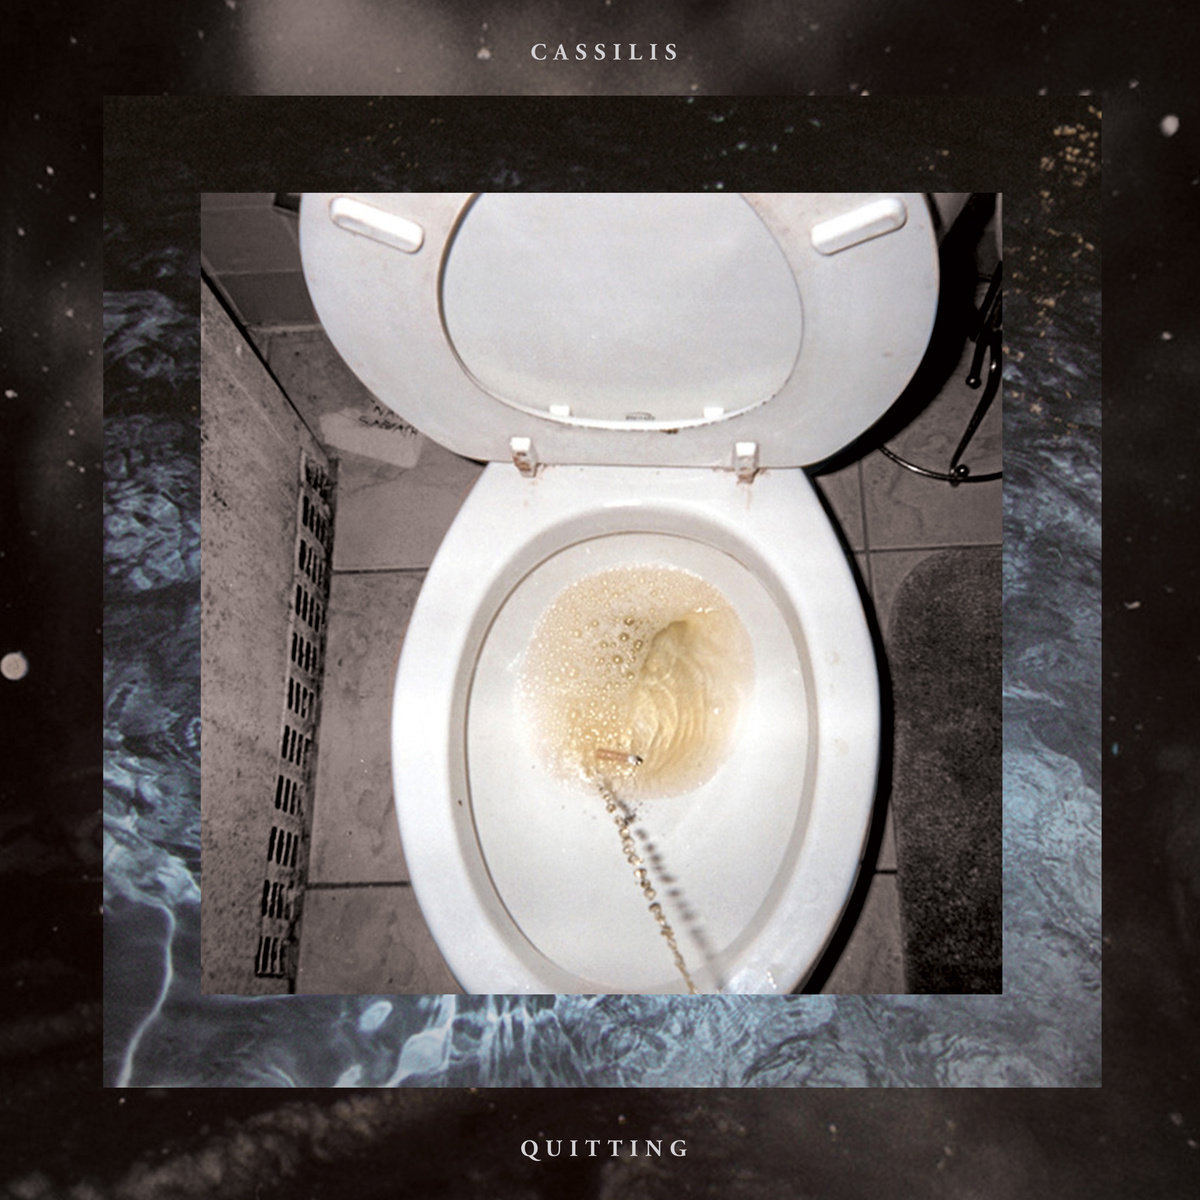 CASSILIS - Quitting